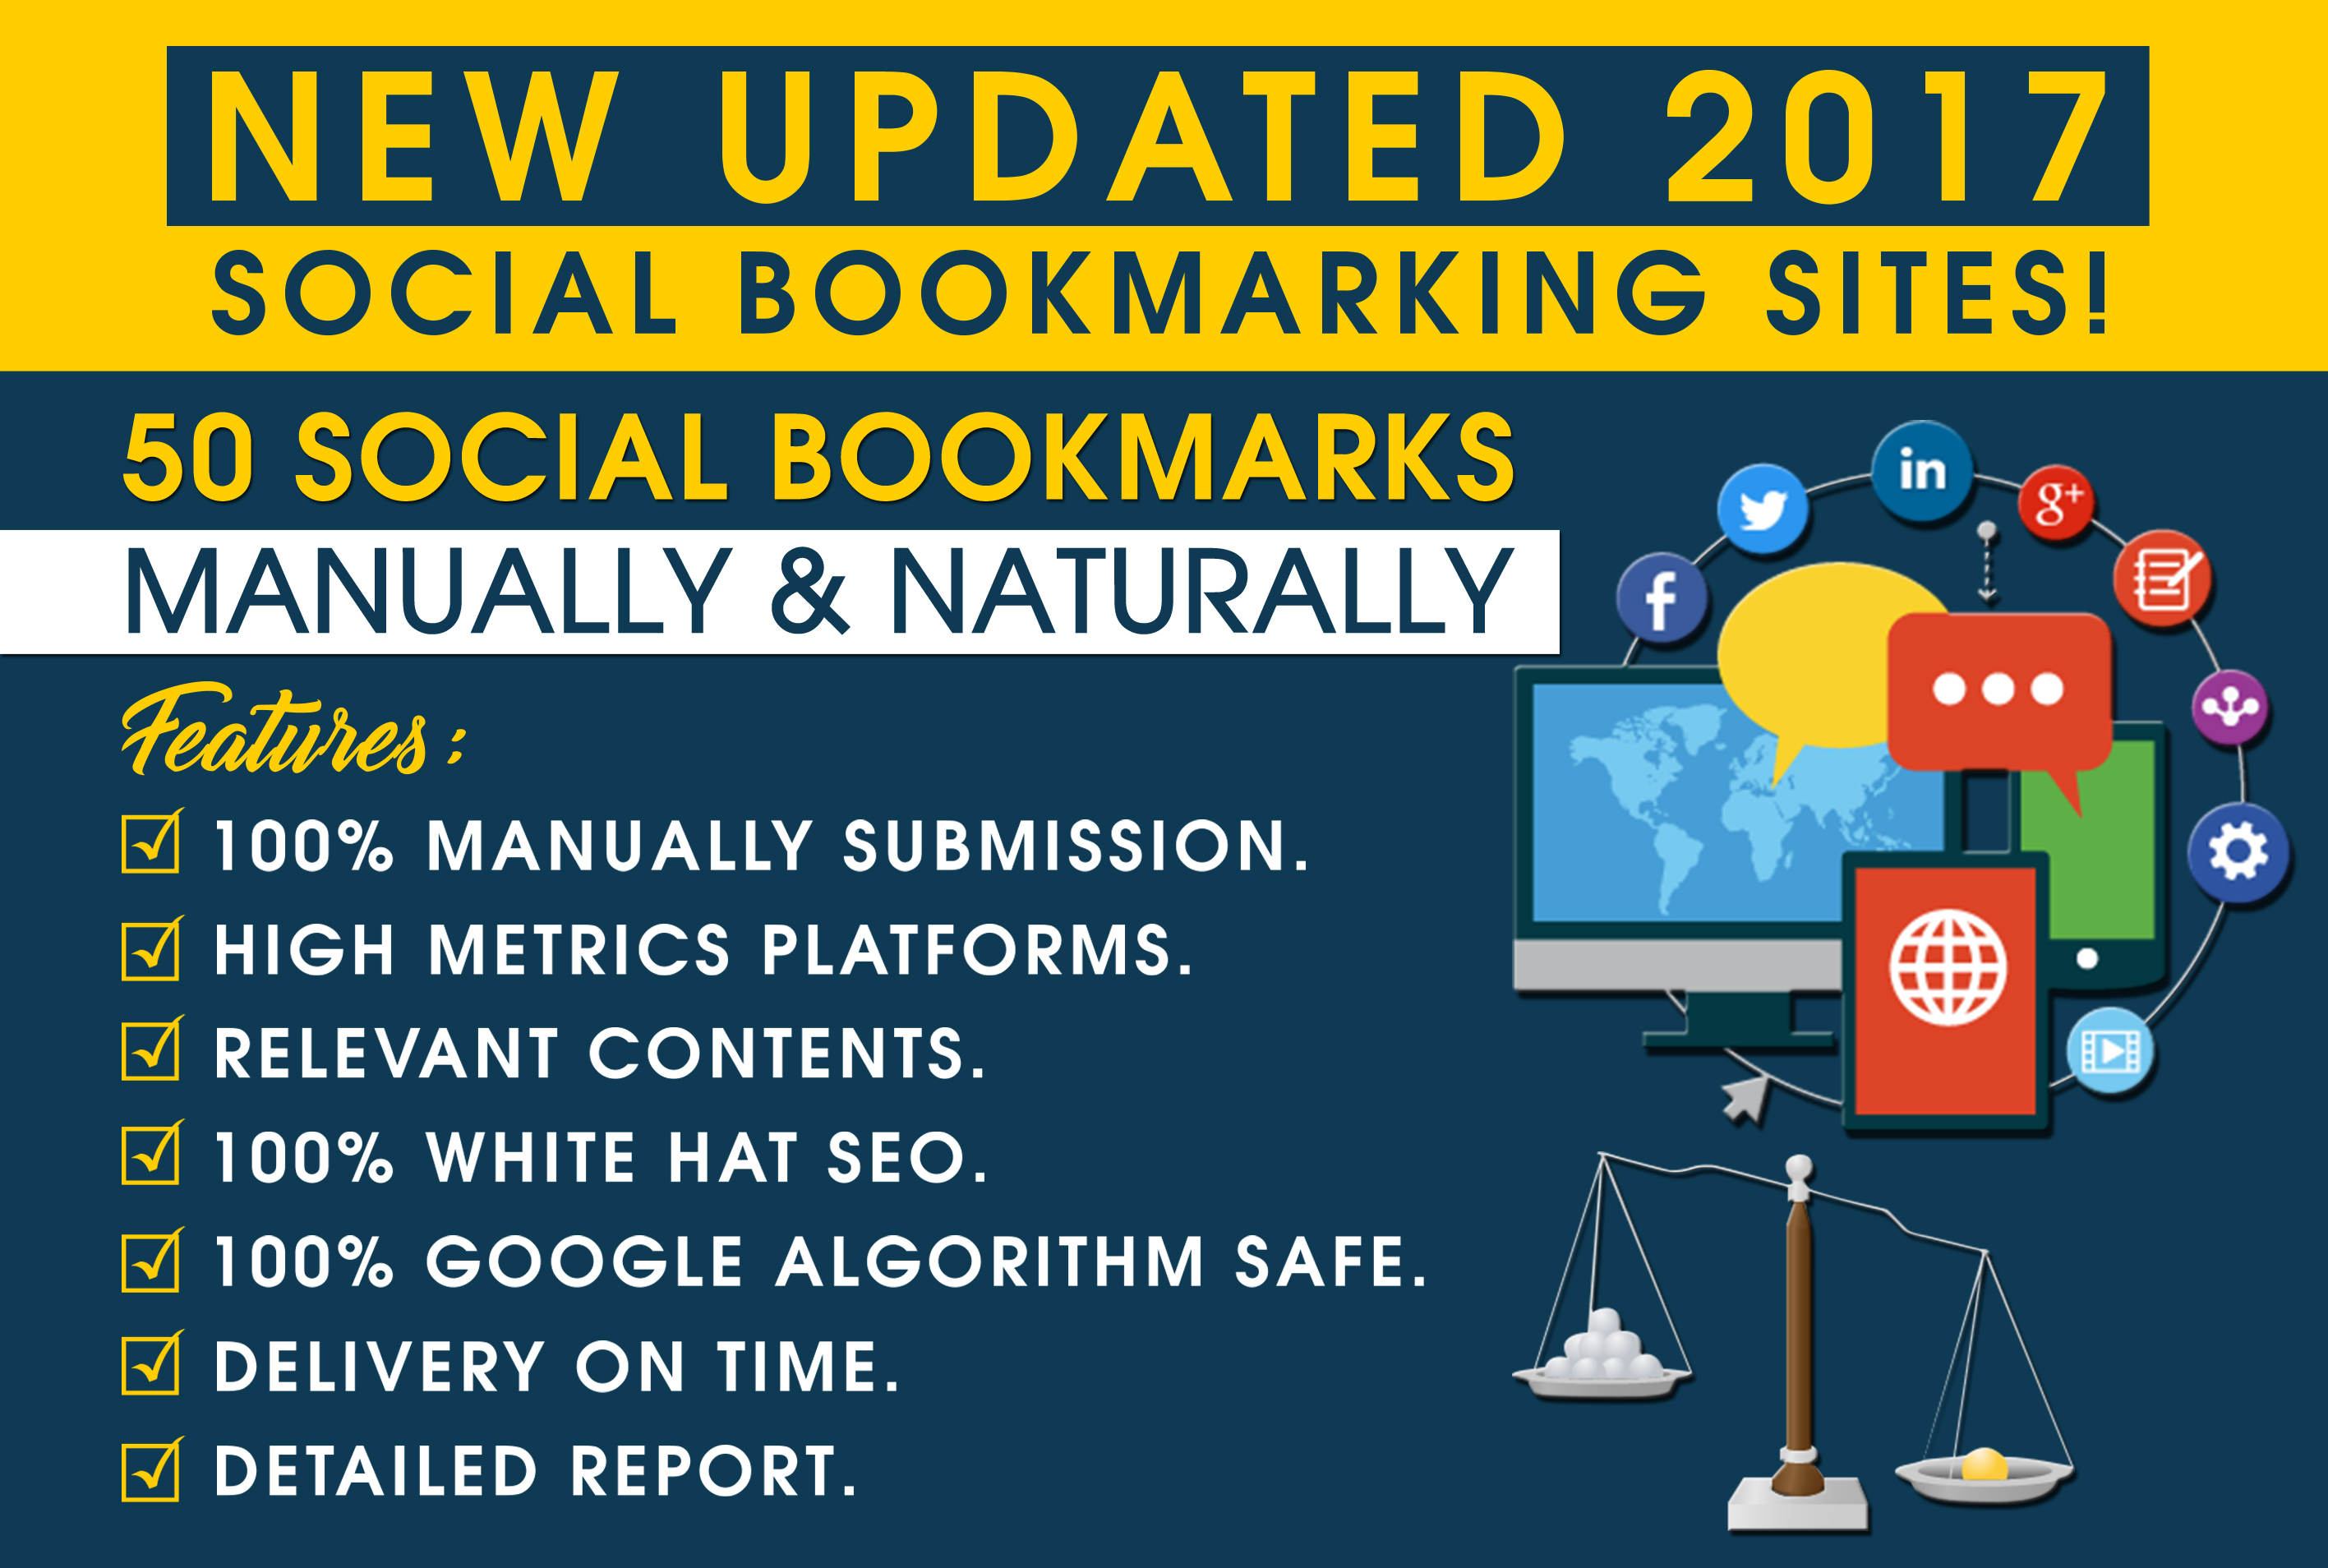 50 Social Bookmarks Backlinks Manually And Naturally